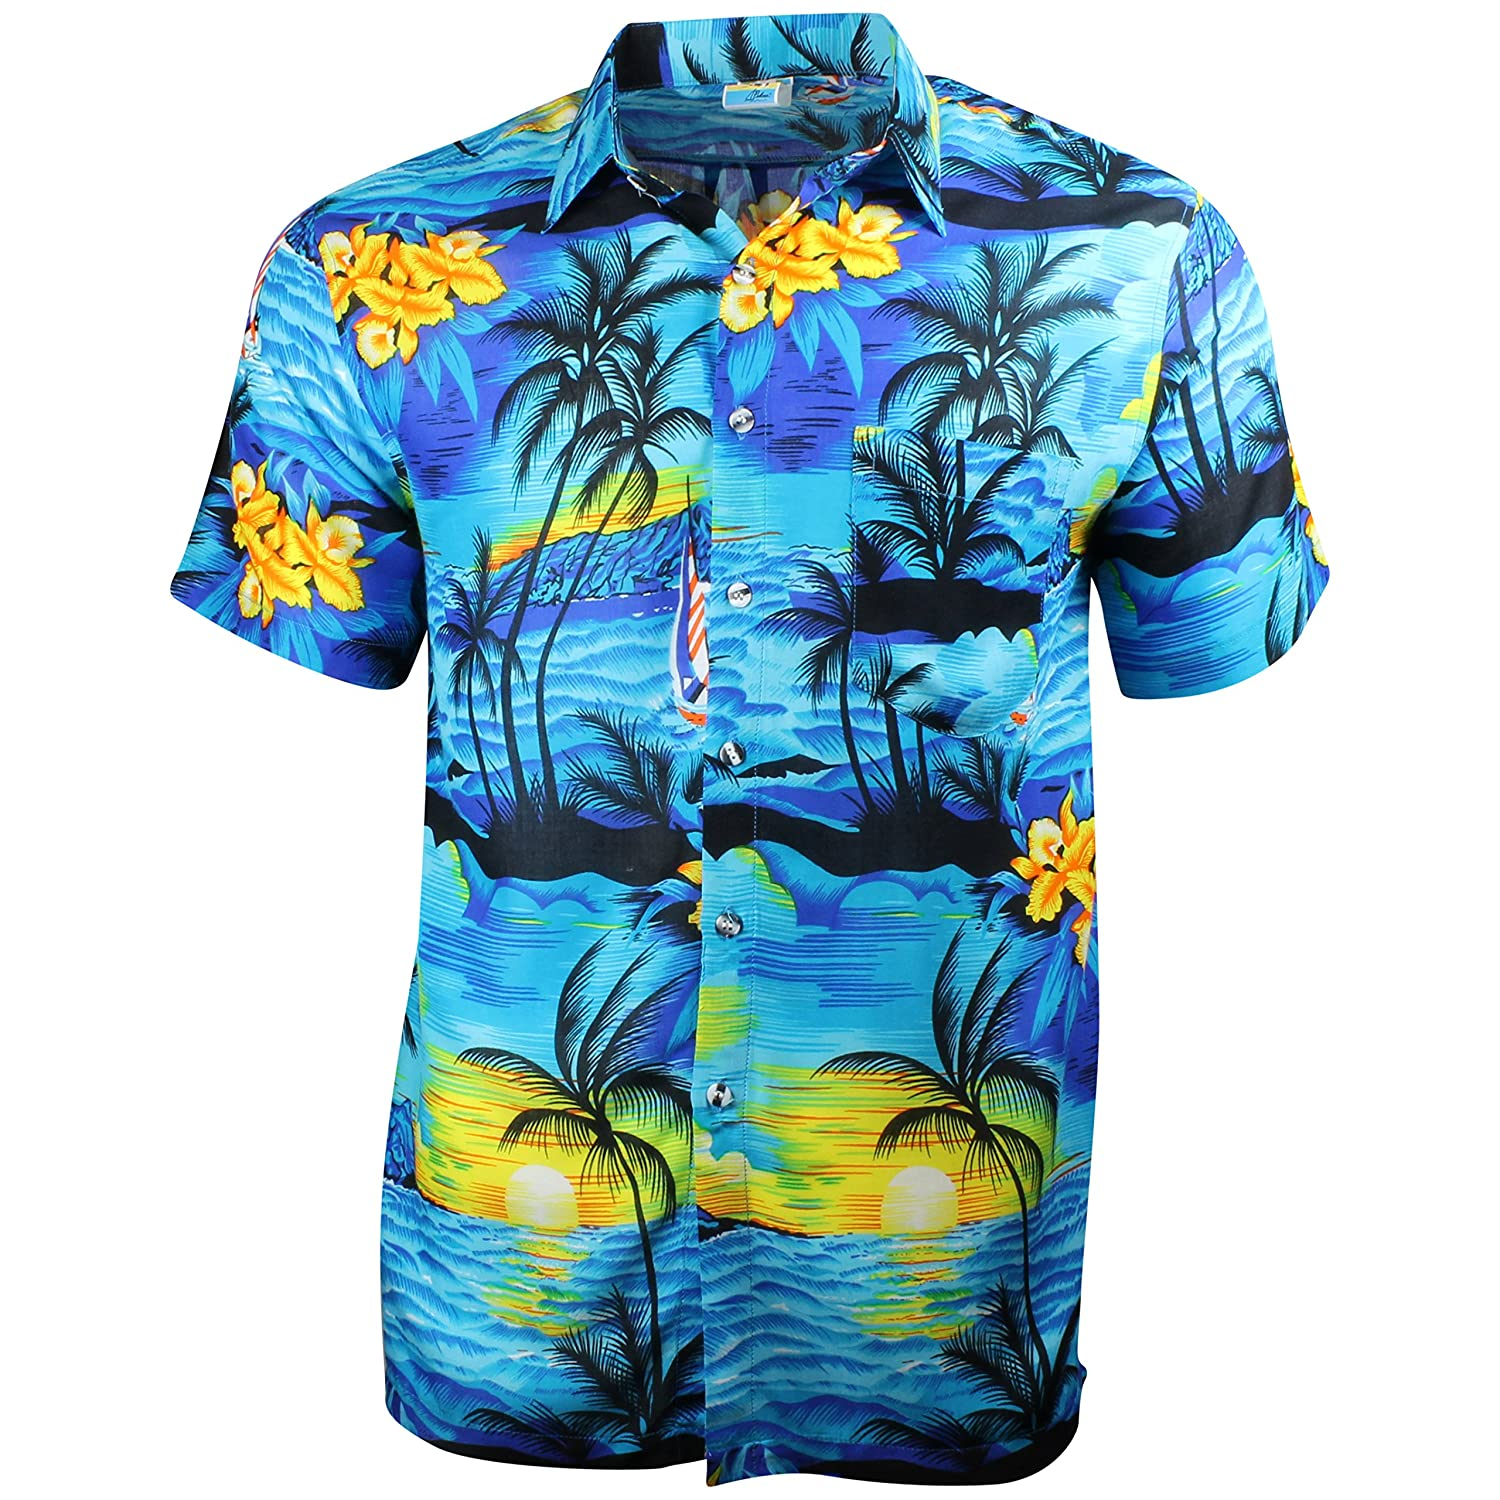 031047d1 Cherry-on-Top Hawaiian Shirt Summer Caribbean Party Stag Sail Boat:  Amazon.co.uk: Clothing